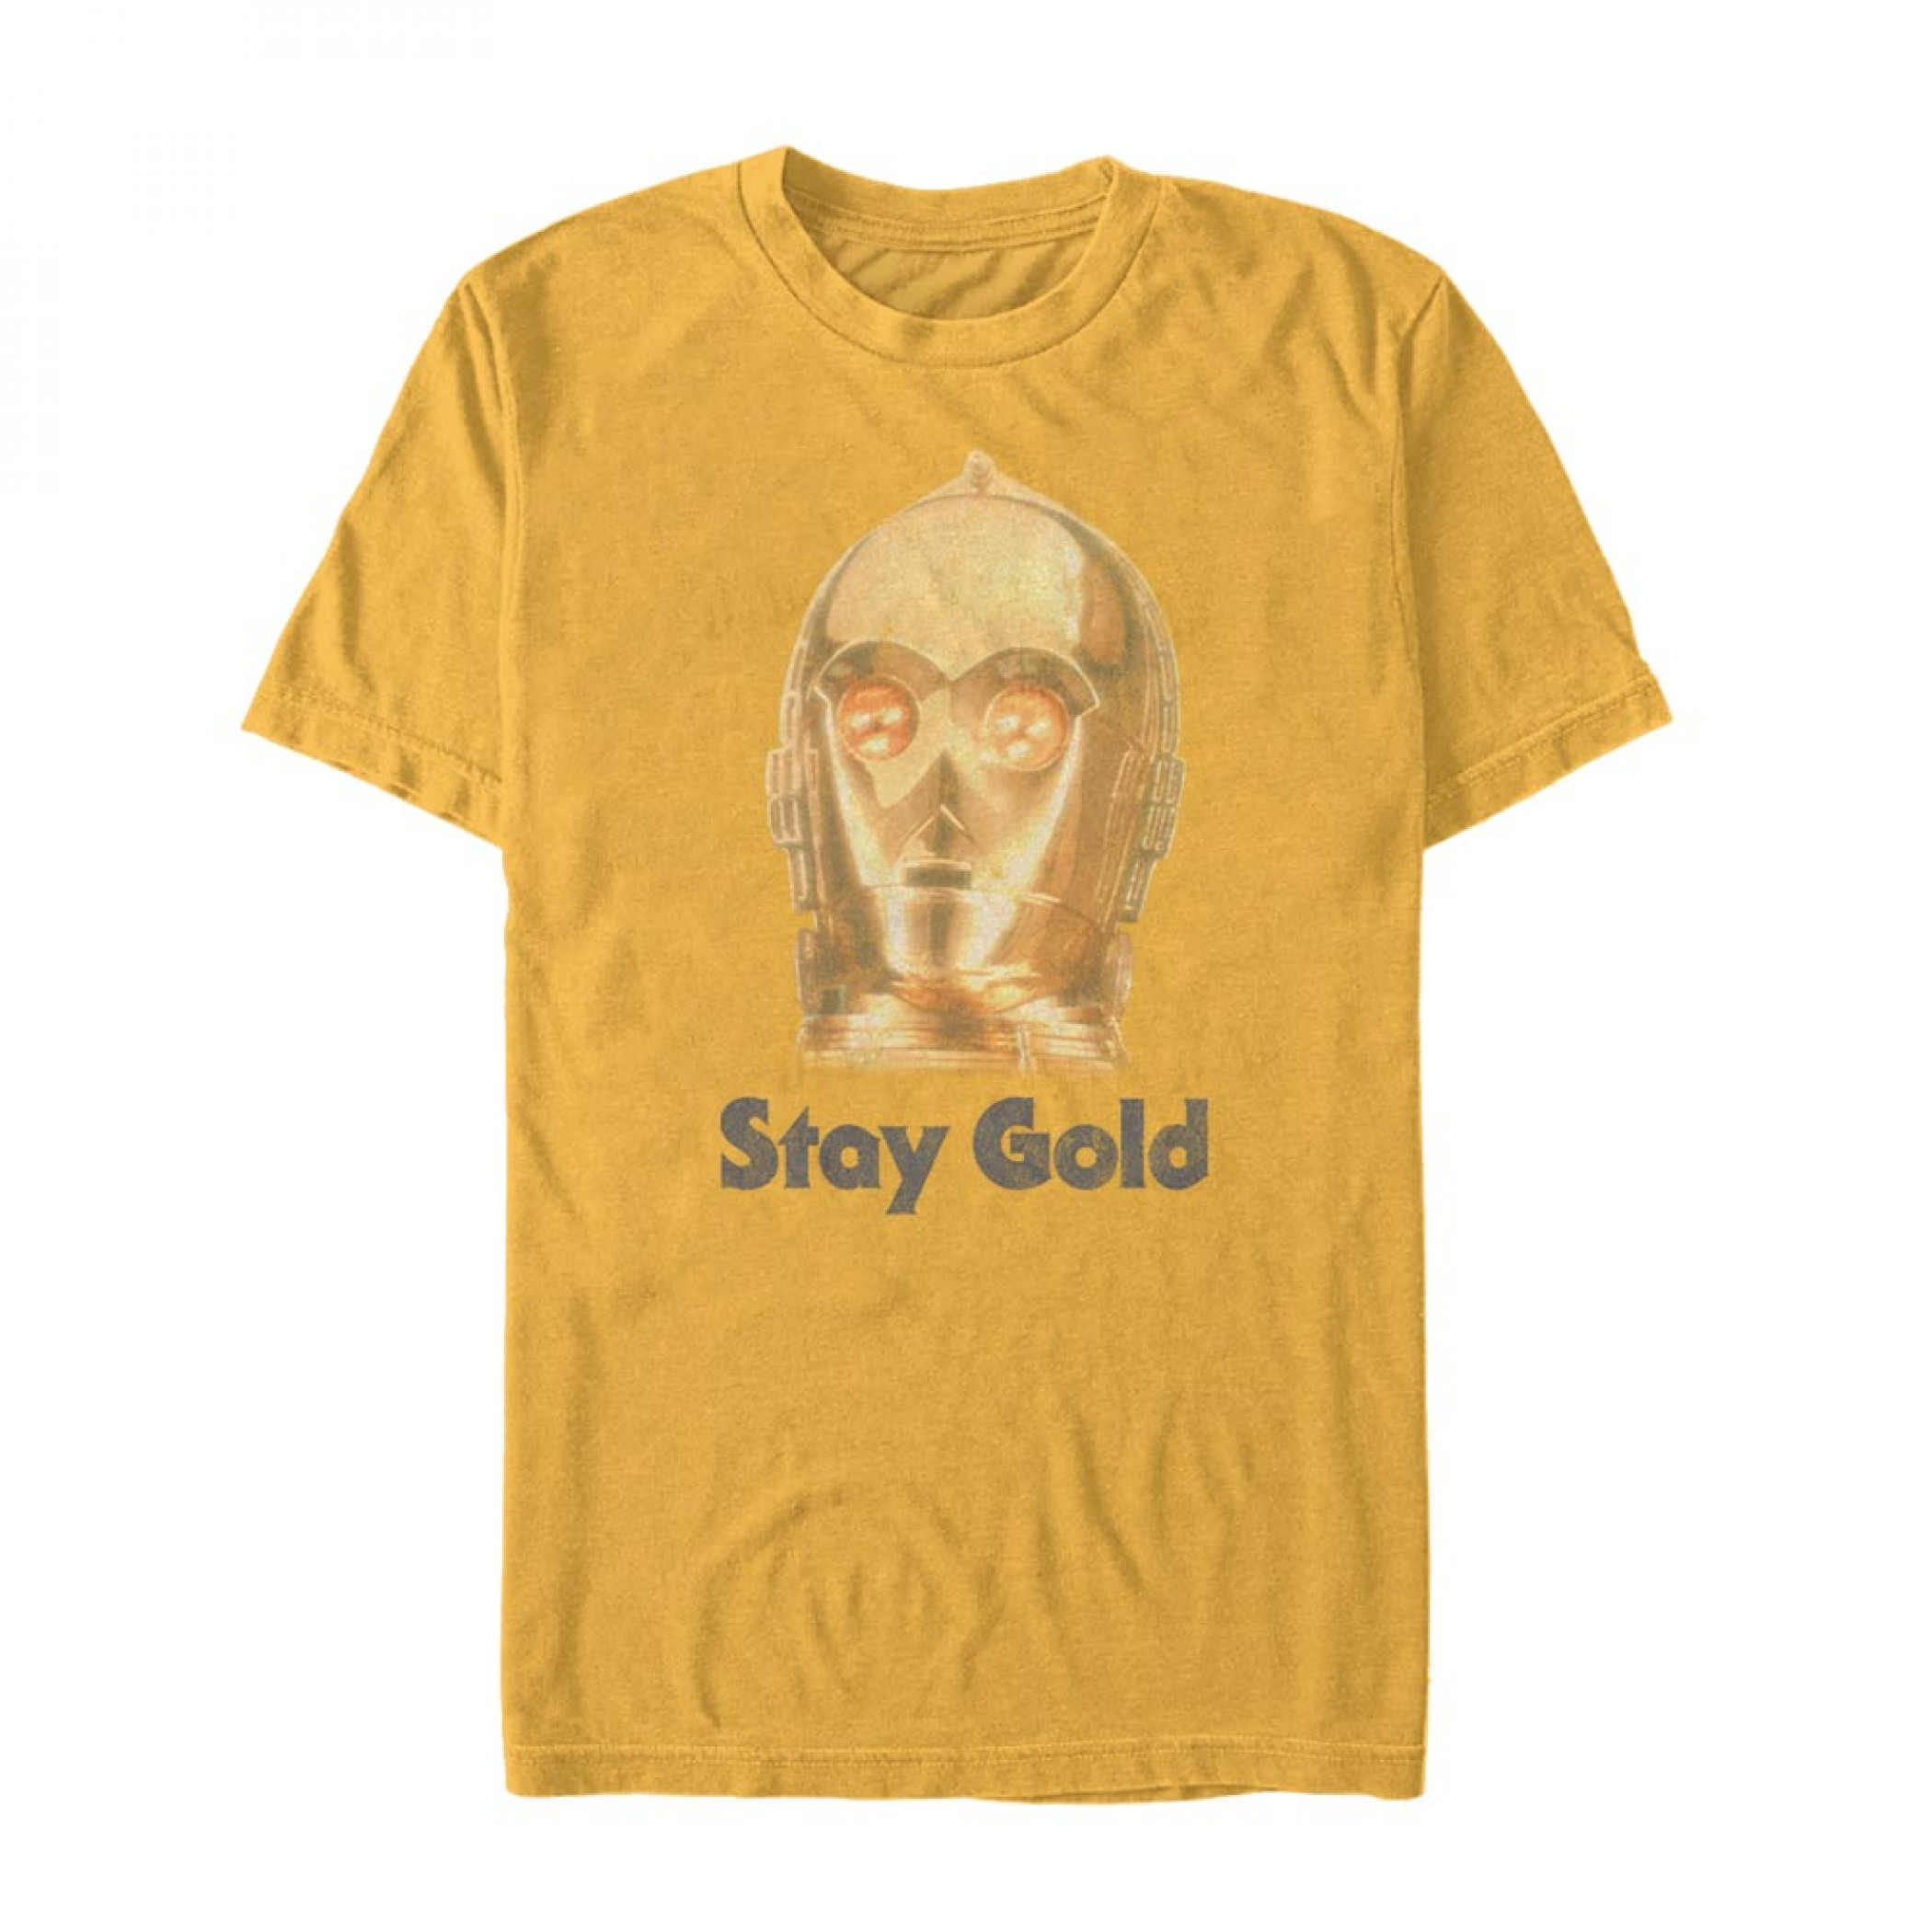 Star Wars The Rise of Skywalker C-3PO Stay Gold T-Shirt